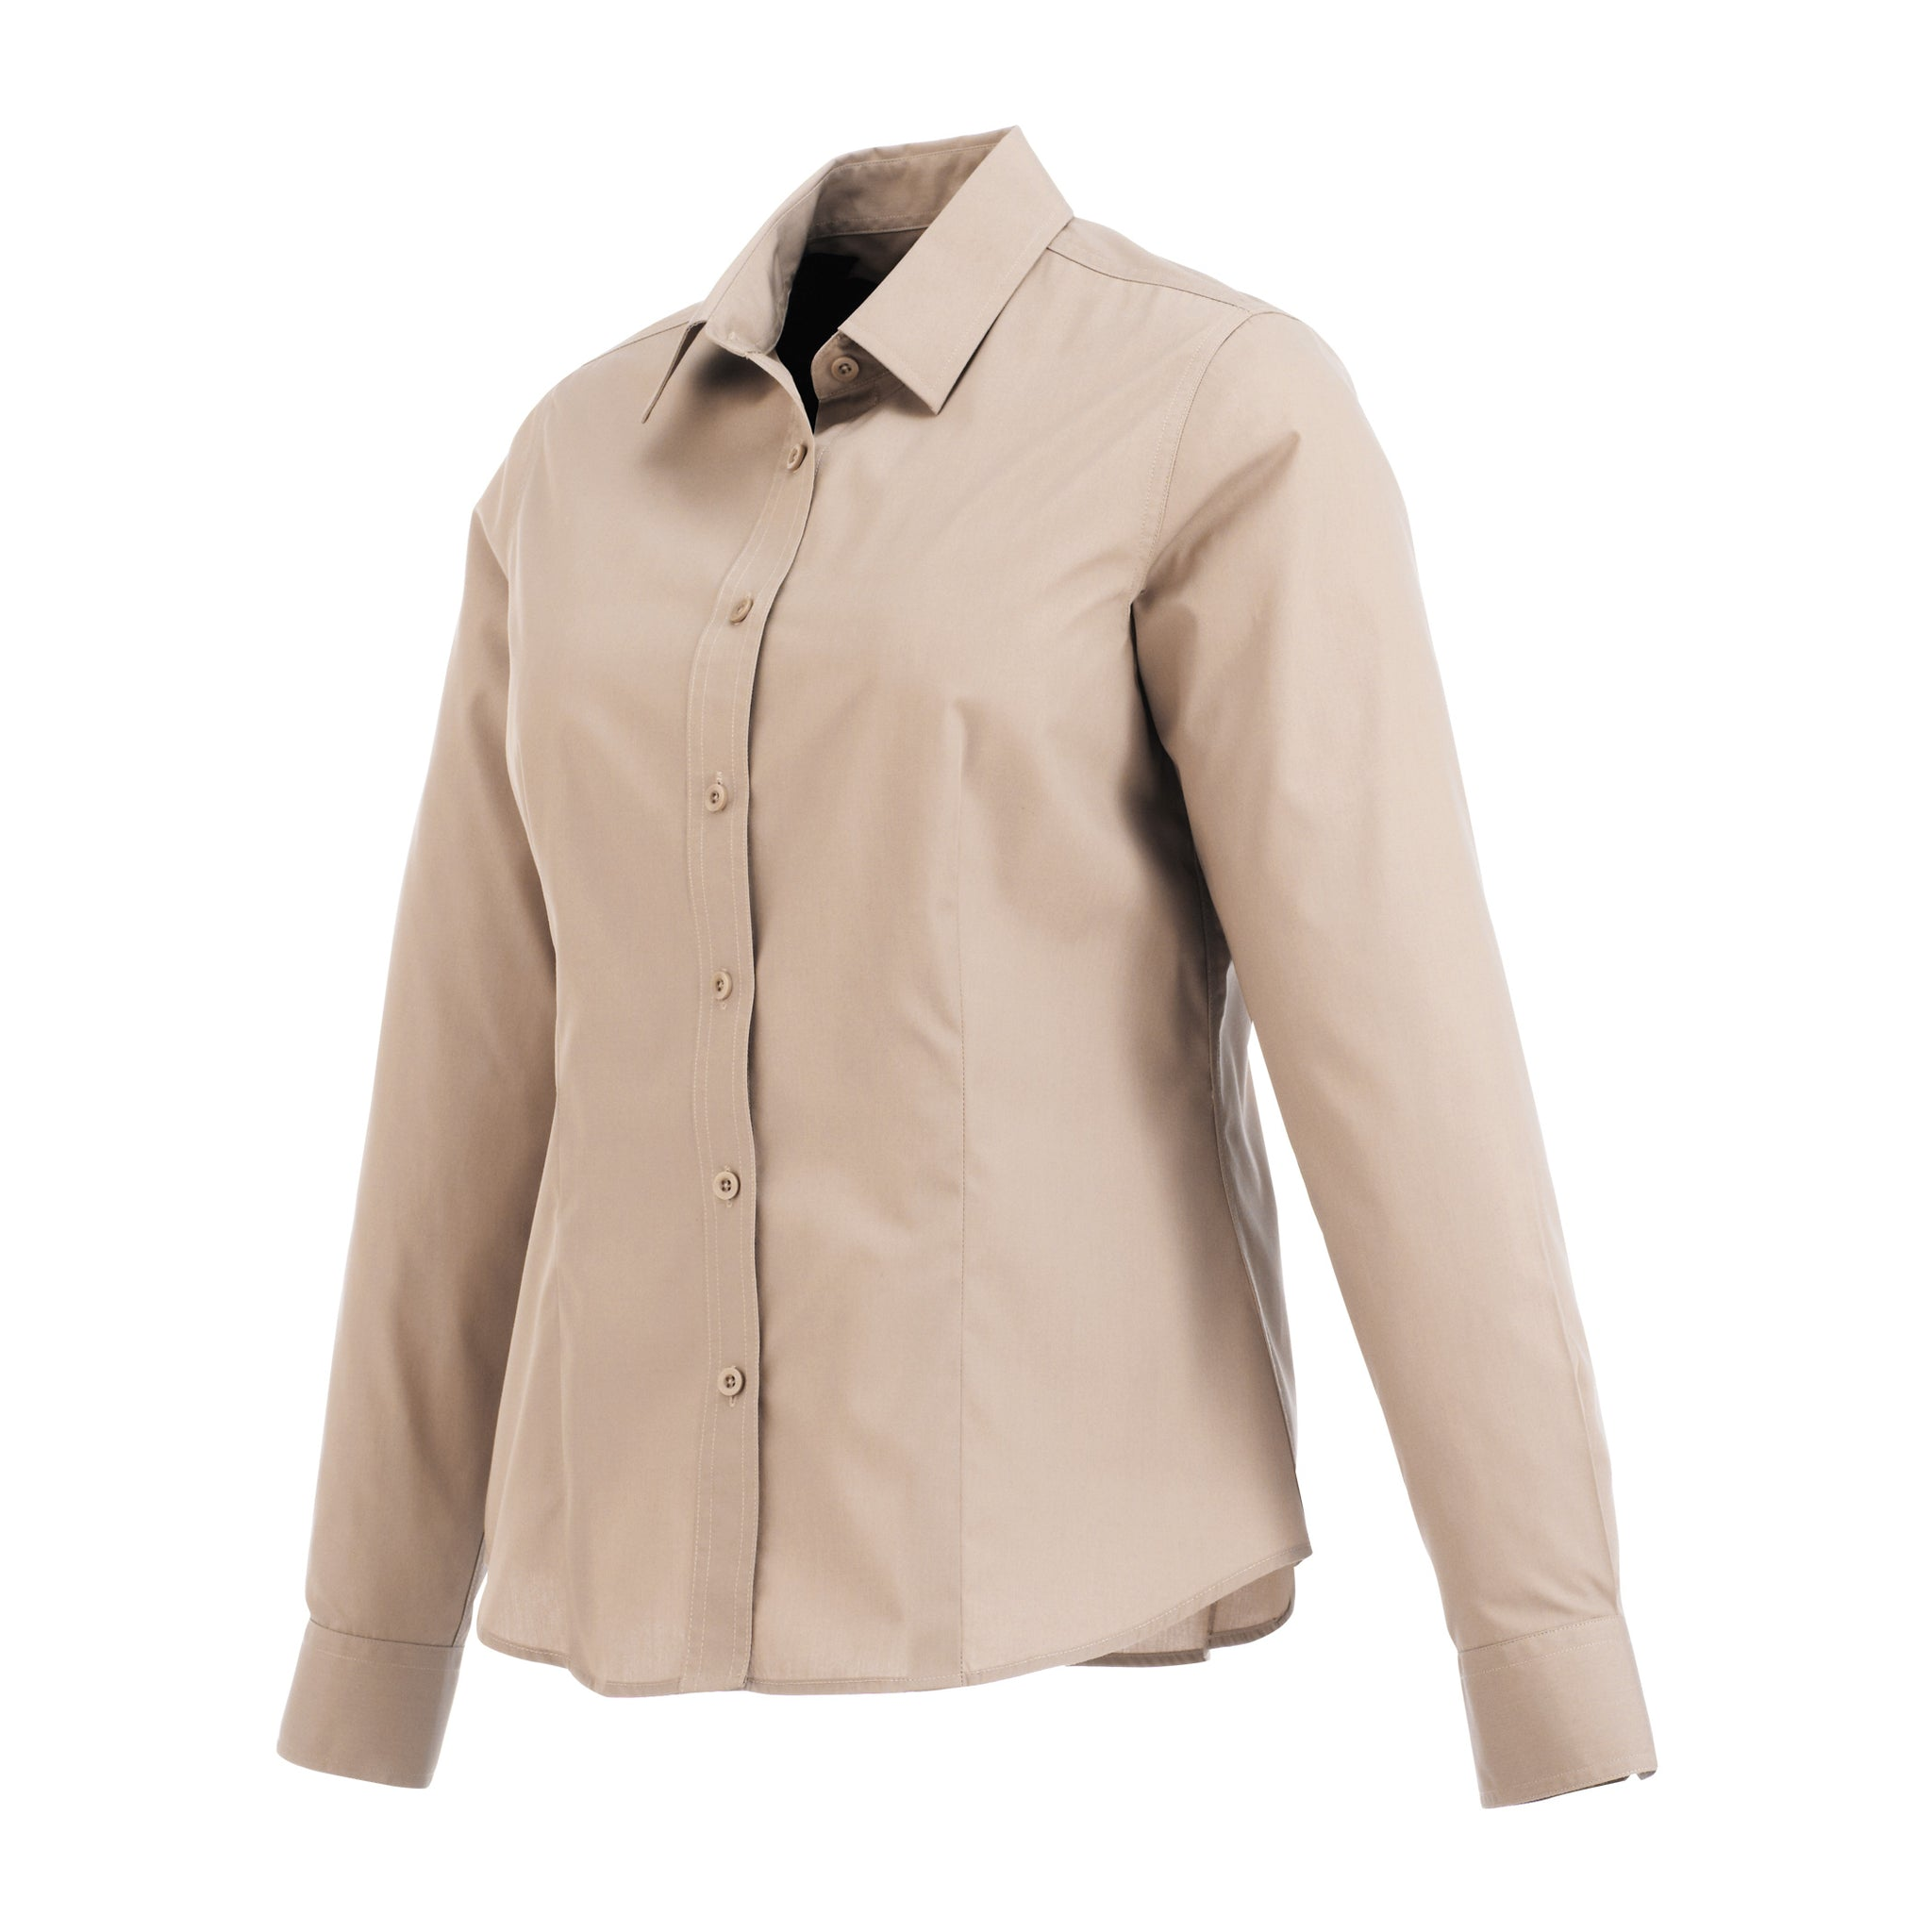 ELEVATE LADIES PRESTON LONG SLEEVE DRESS SHIRT